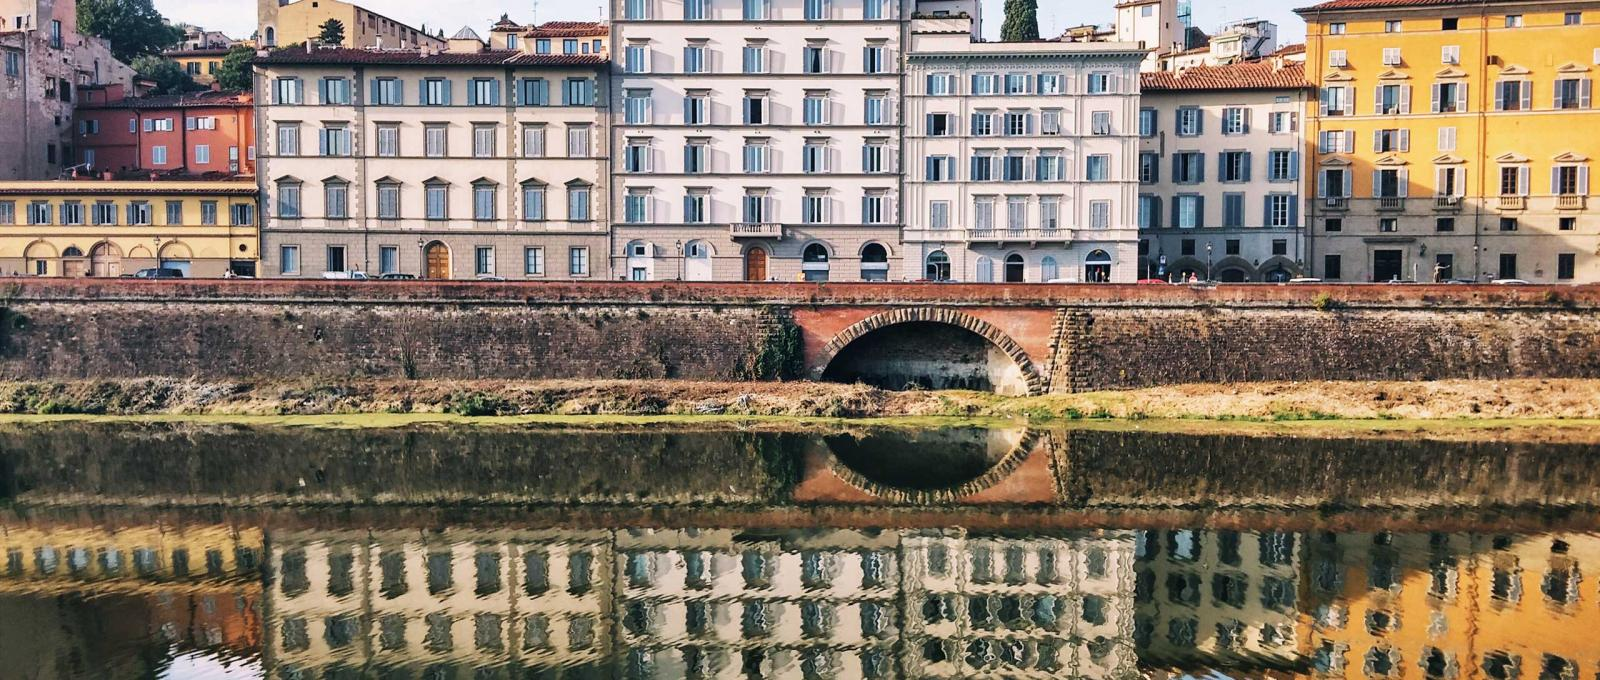 Landscape photo of buildings along a river in Florence, Italy